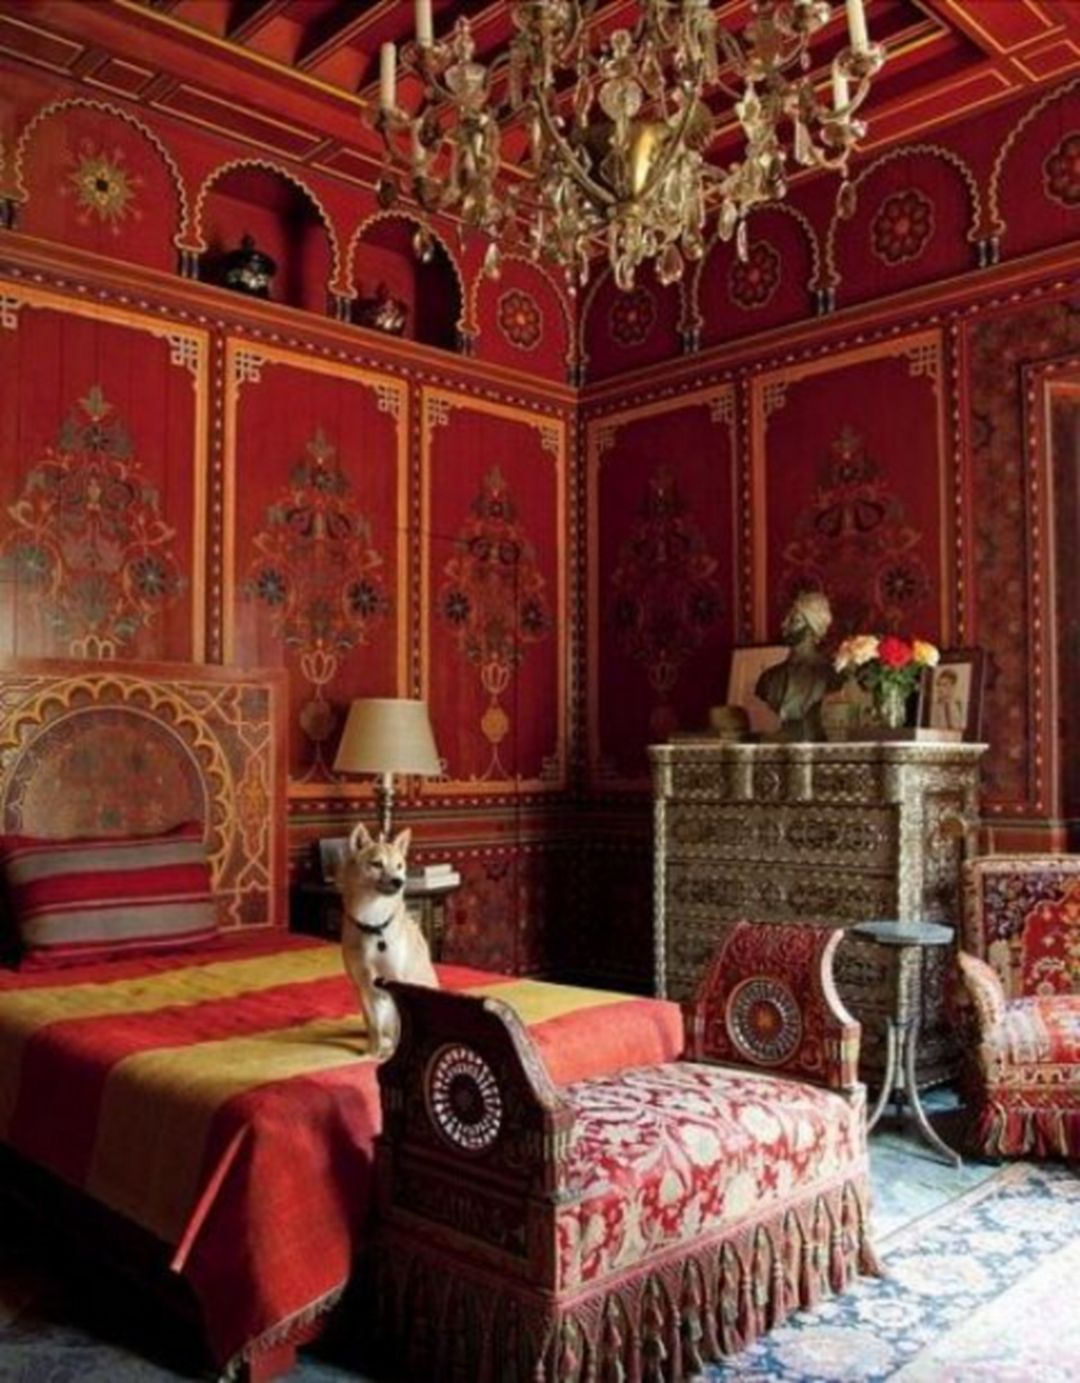 ... Moroccan Bedroom Design Ideas For Amazing Home Http://decorathing.com/ Bedroom Ideas/40 Comfortable Moroccan Bedroom Design Ideas For Amazing Home/